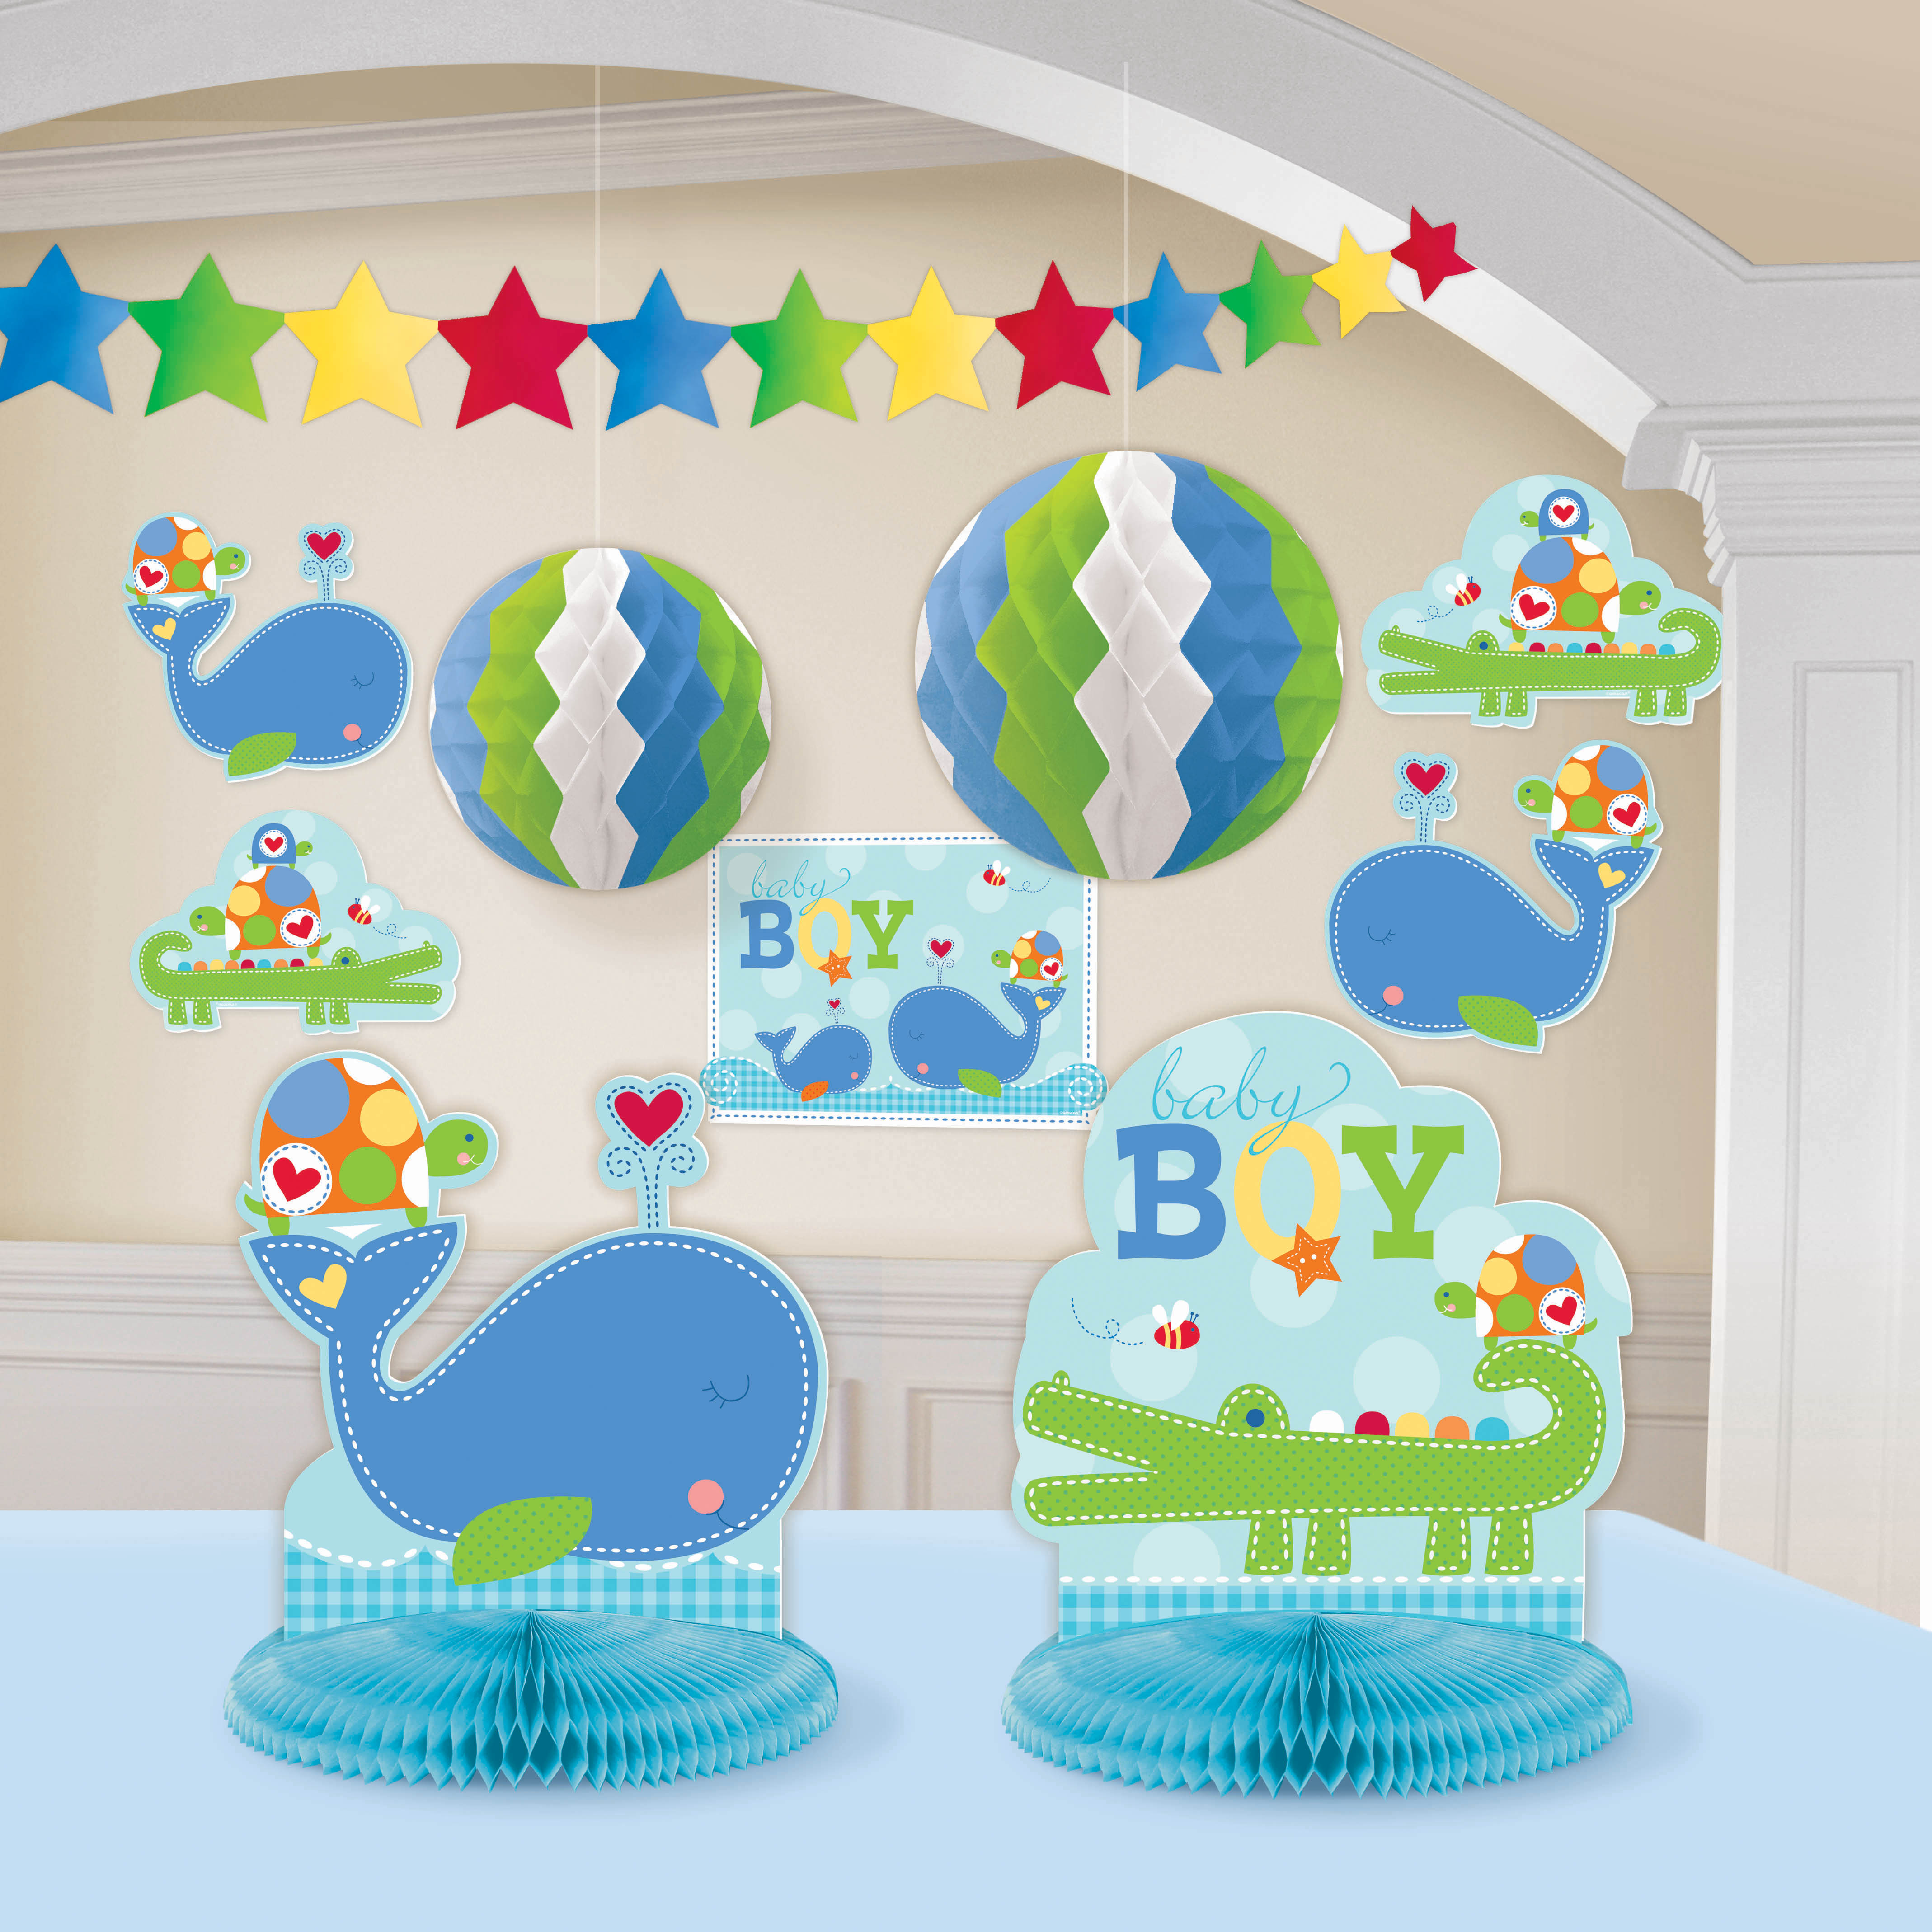 Ahoy baby room decorating kit blue boy shower birthday for Baby shower decoration kits girl